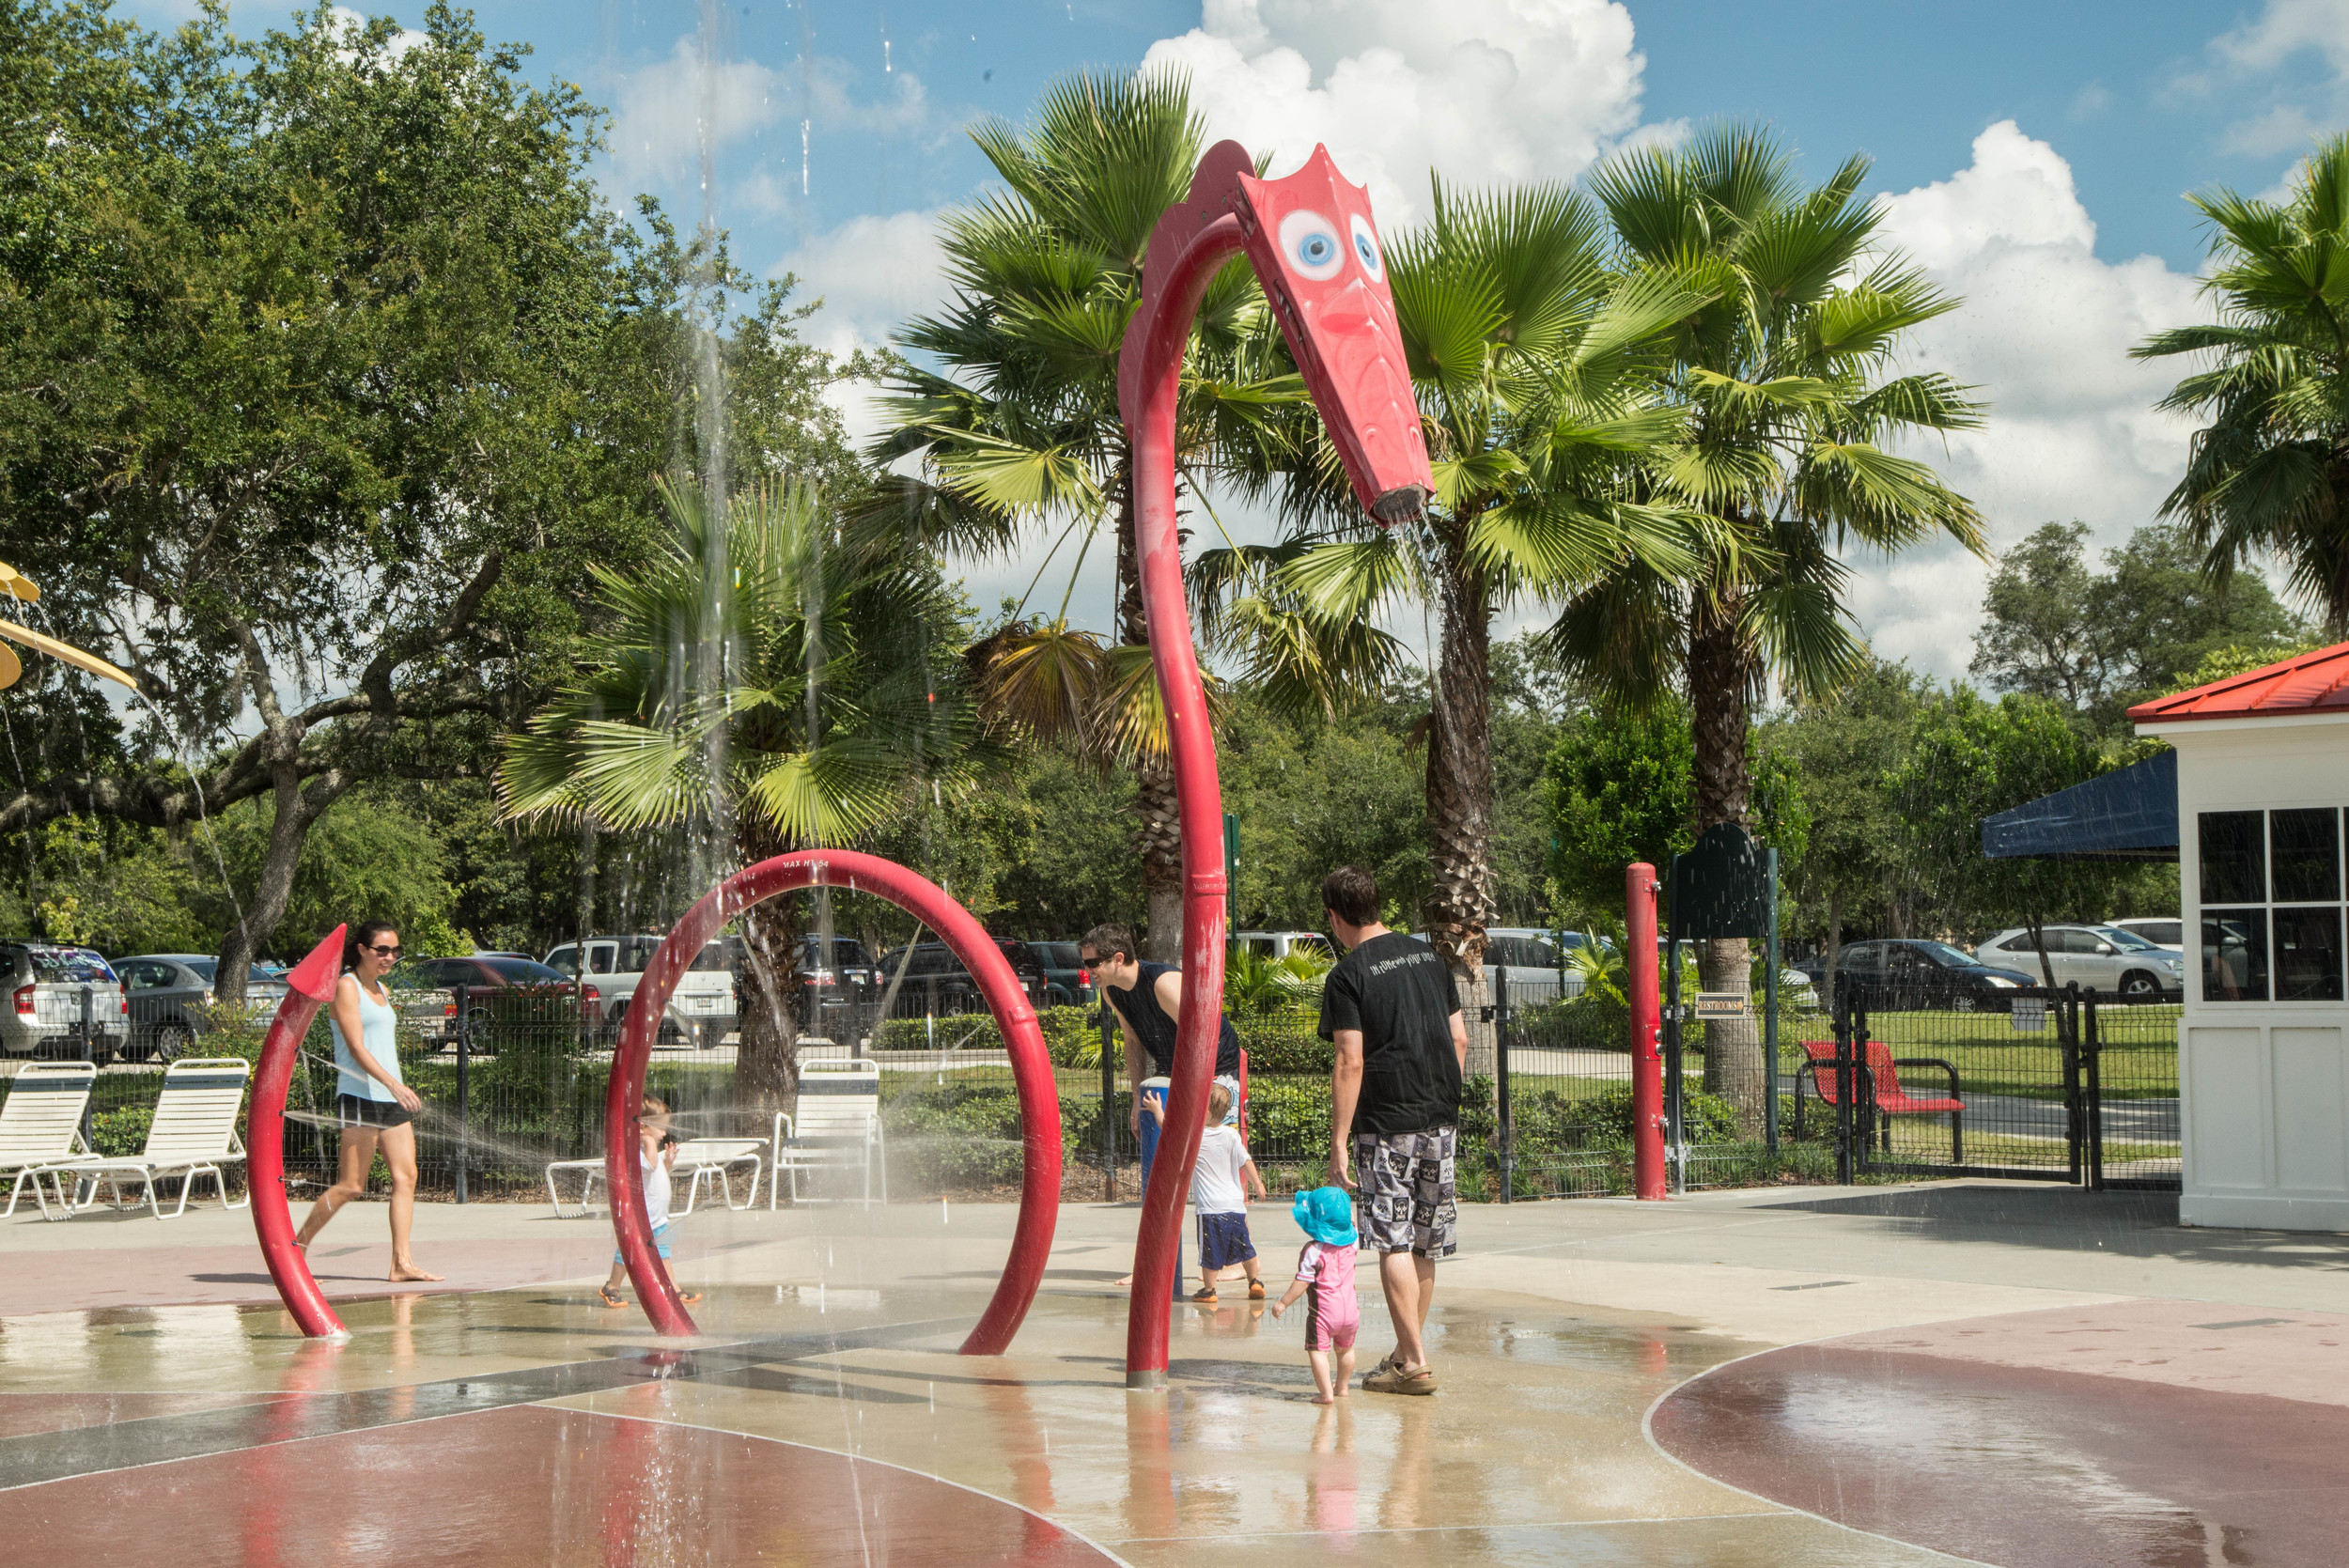 Splash Pad post- Coming soon!